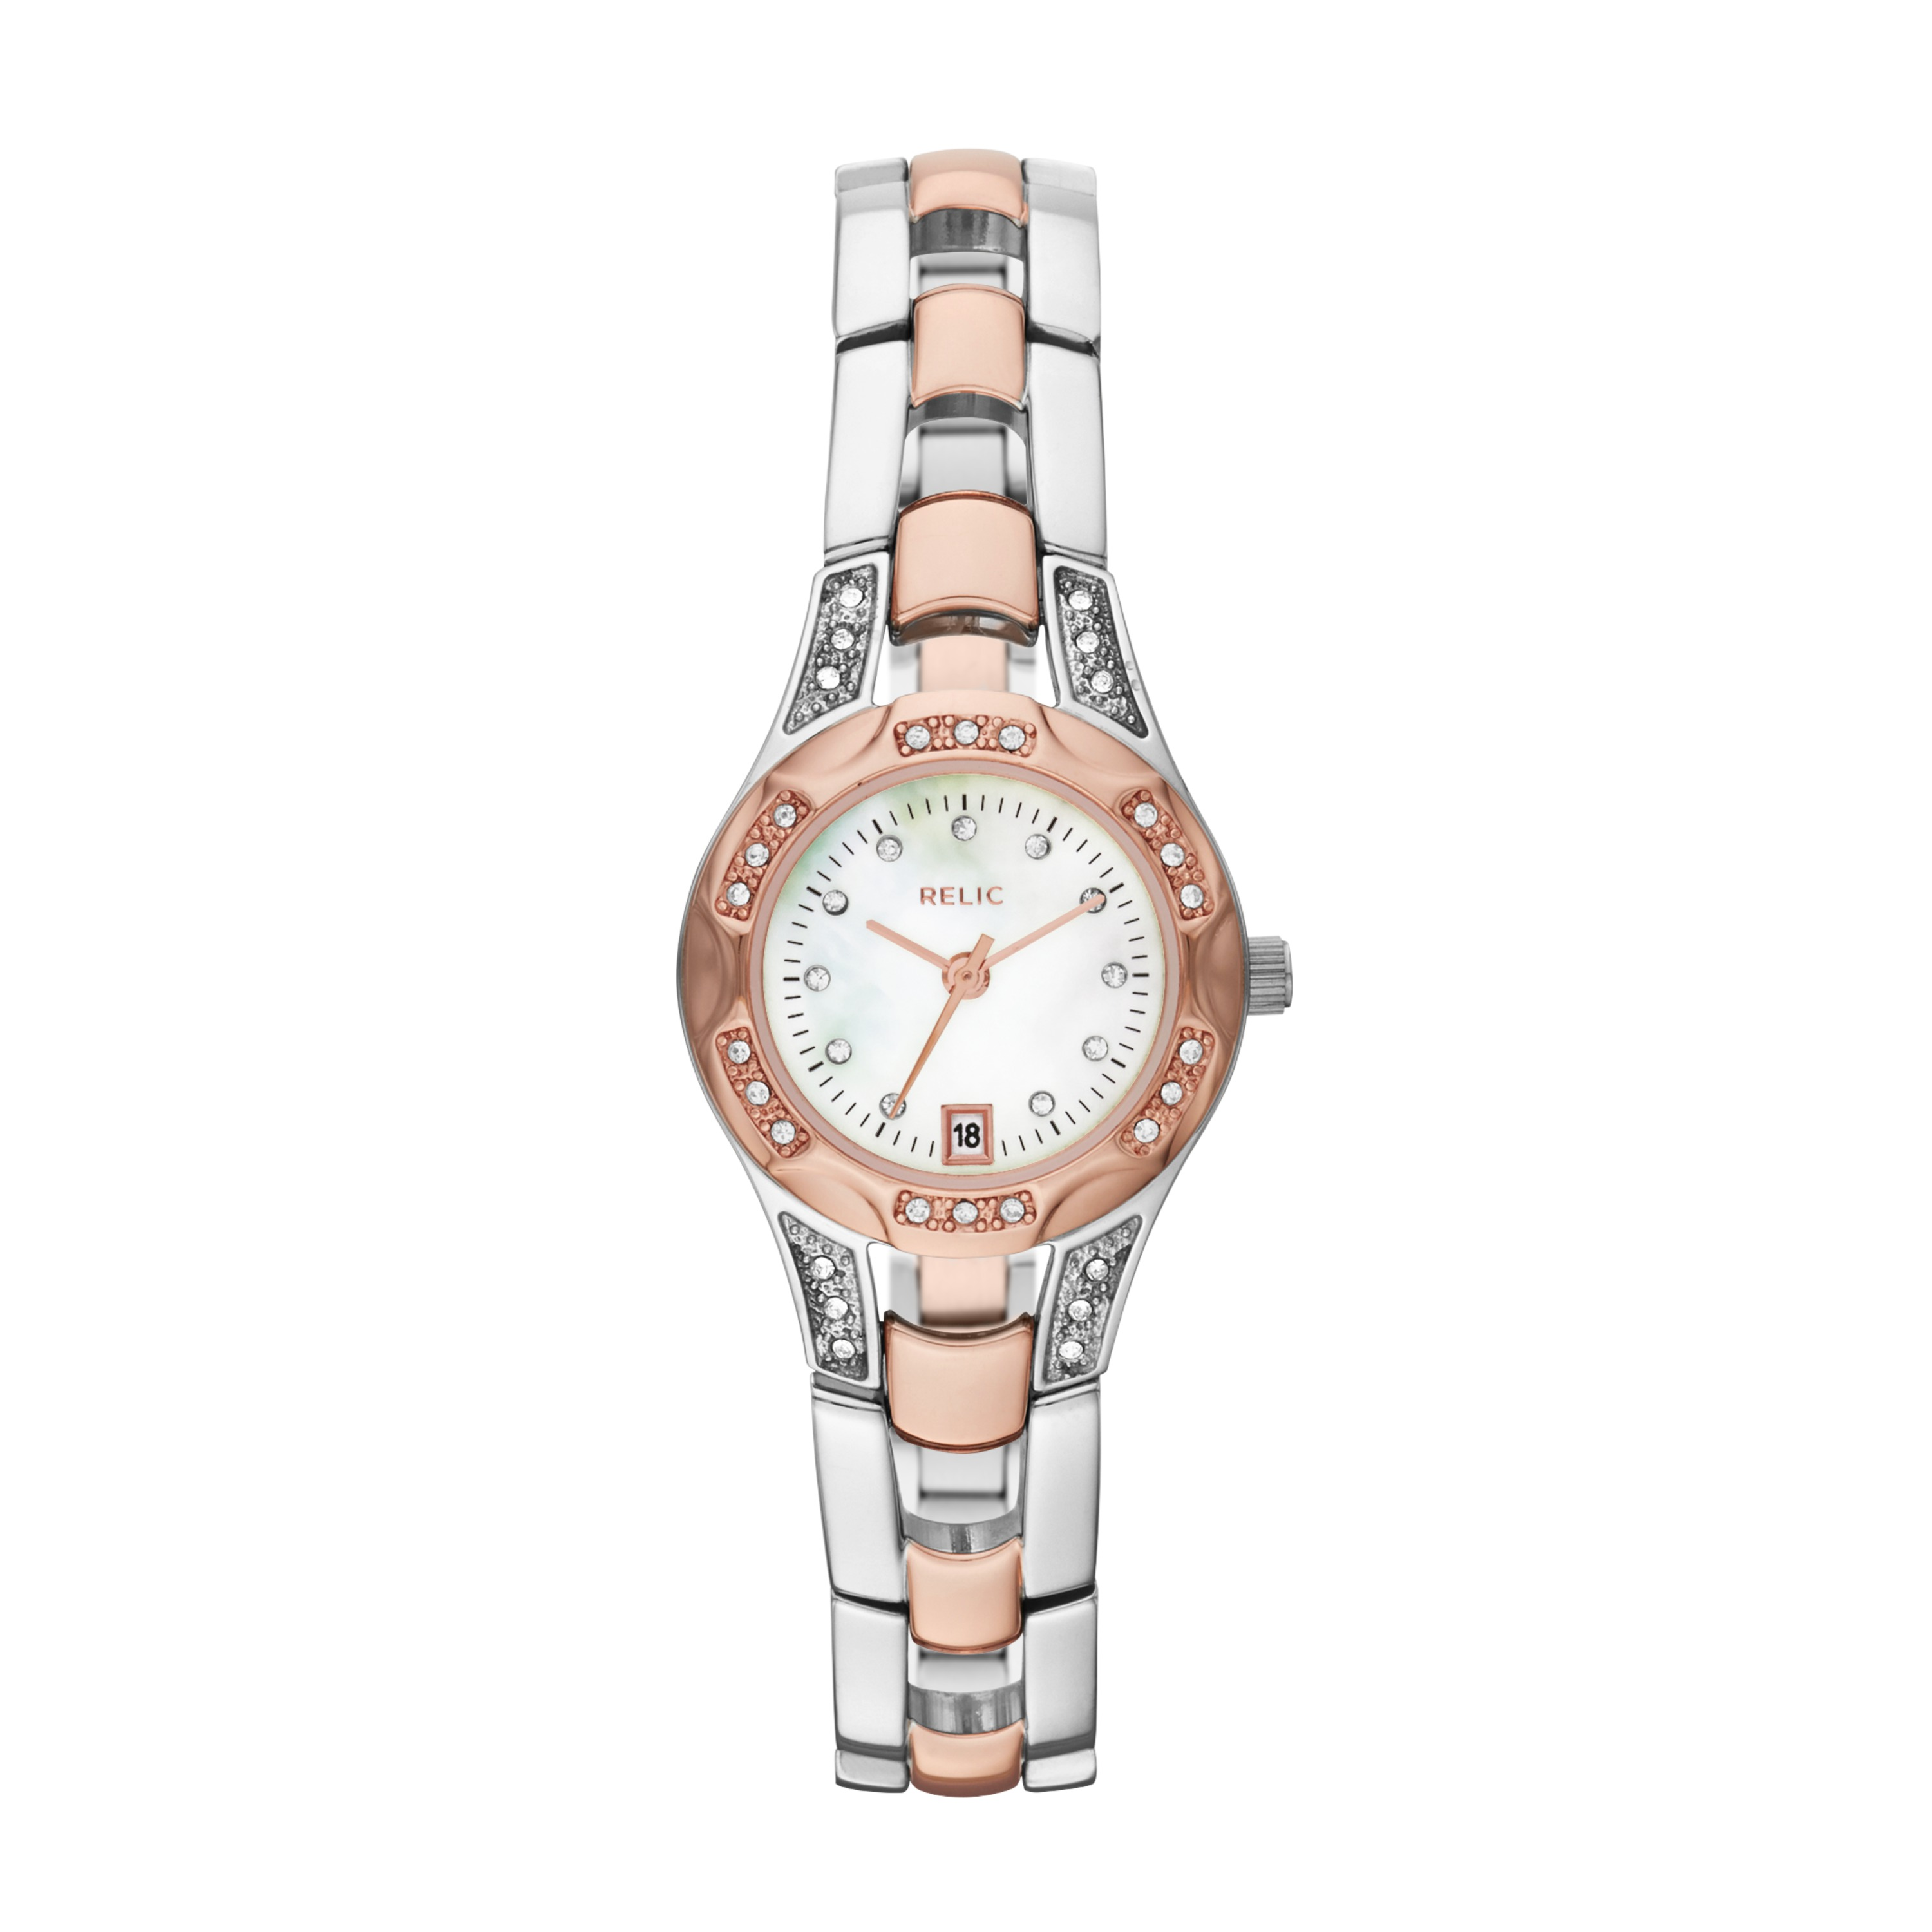 Relic Ladies Calendar Date Watch With White Mother Of